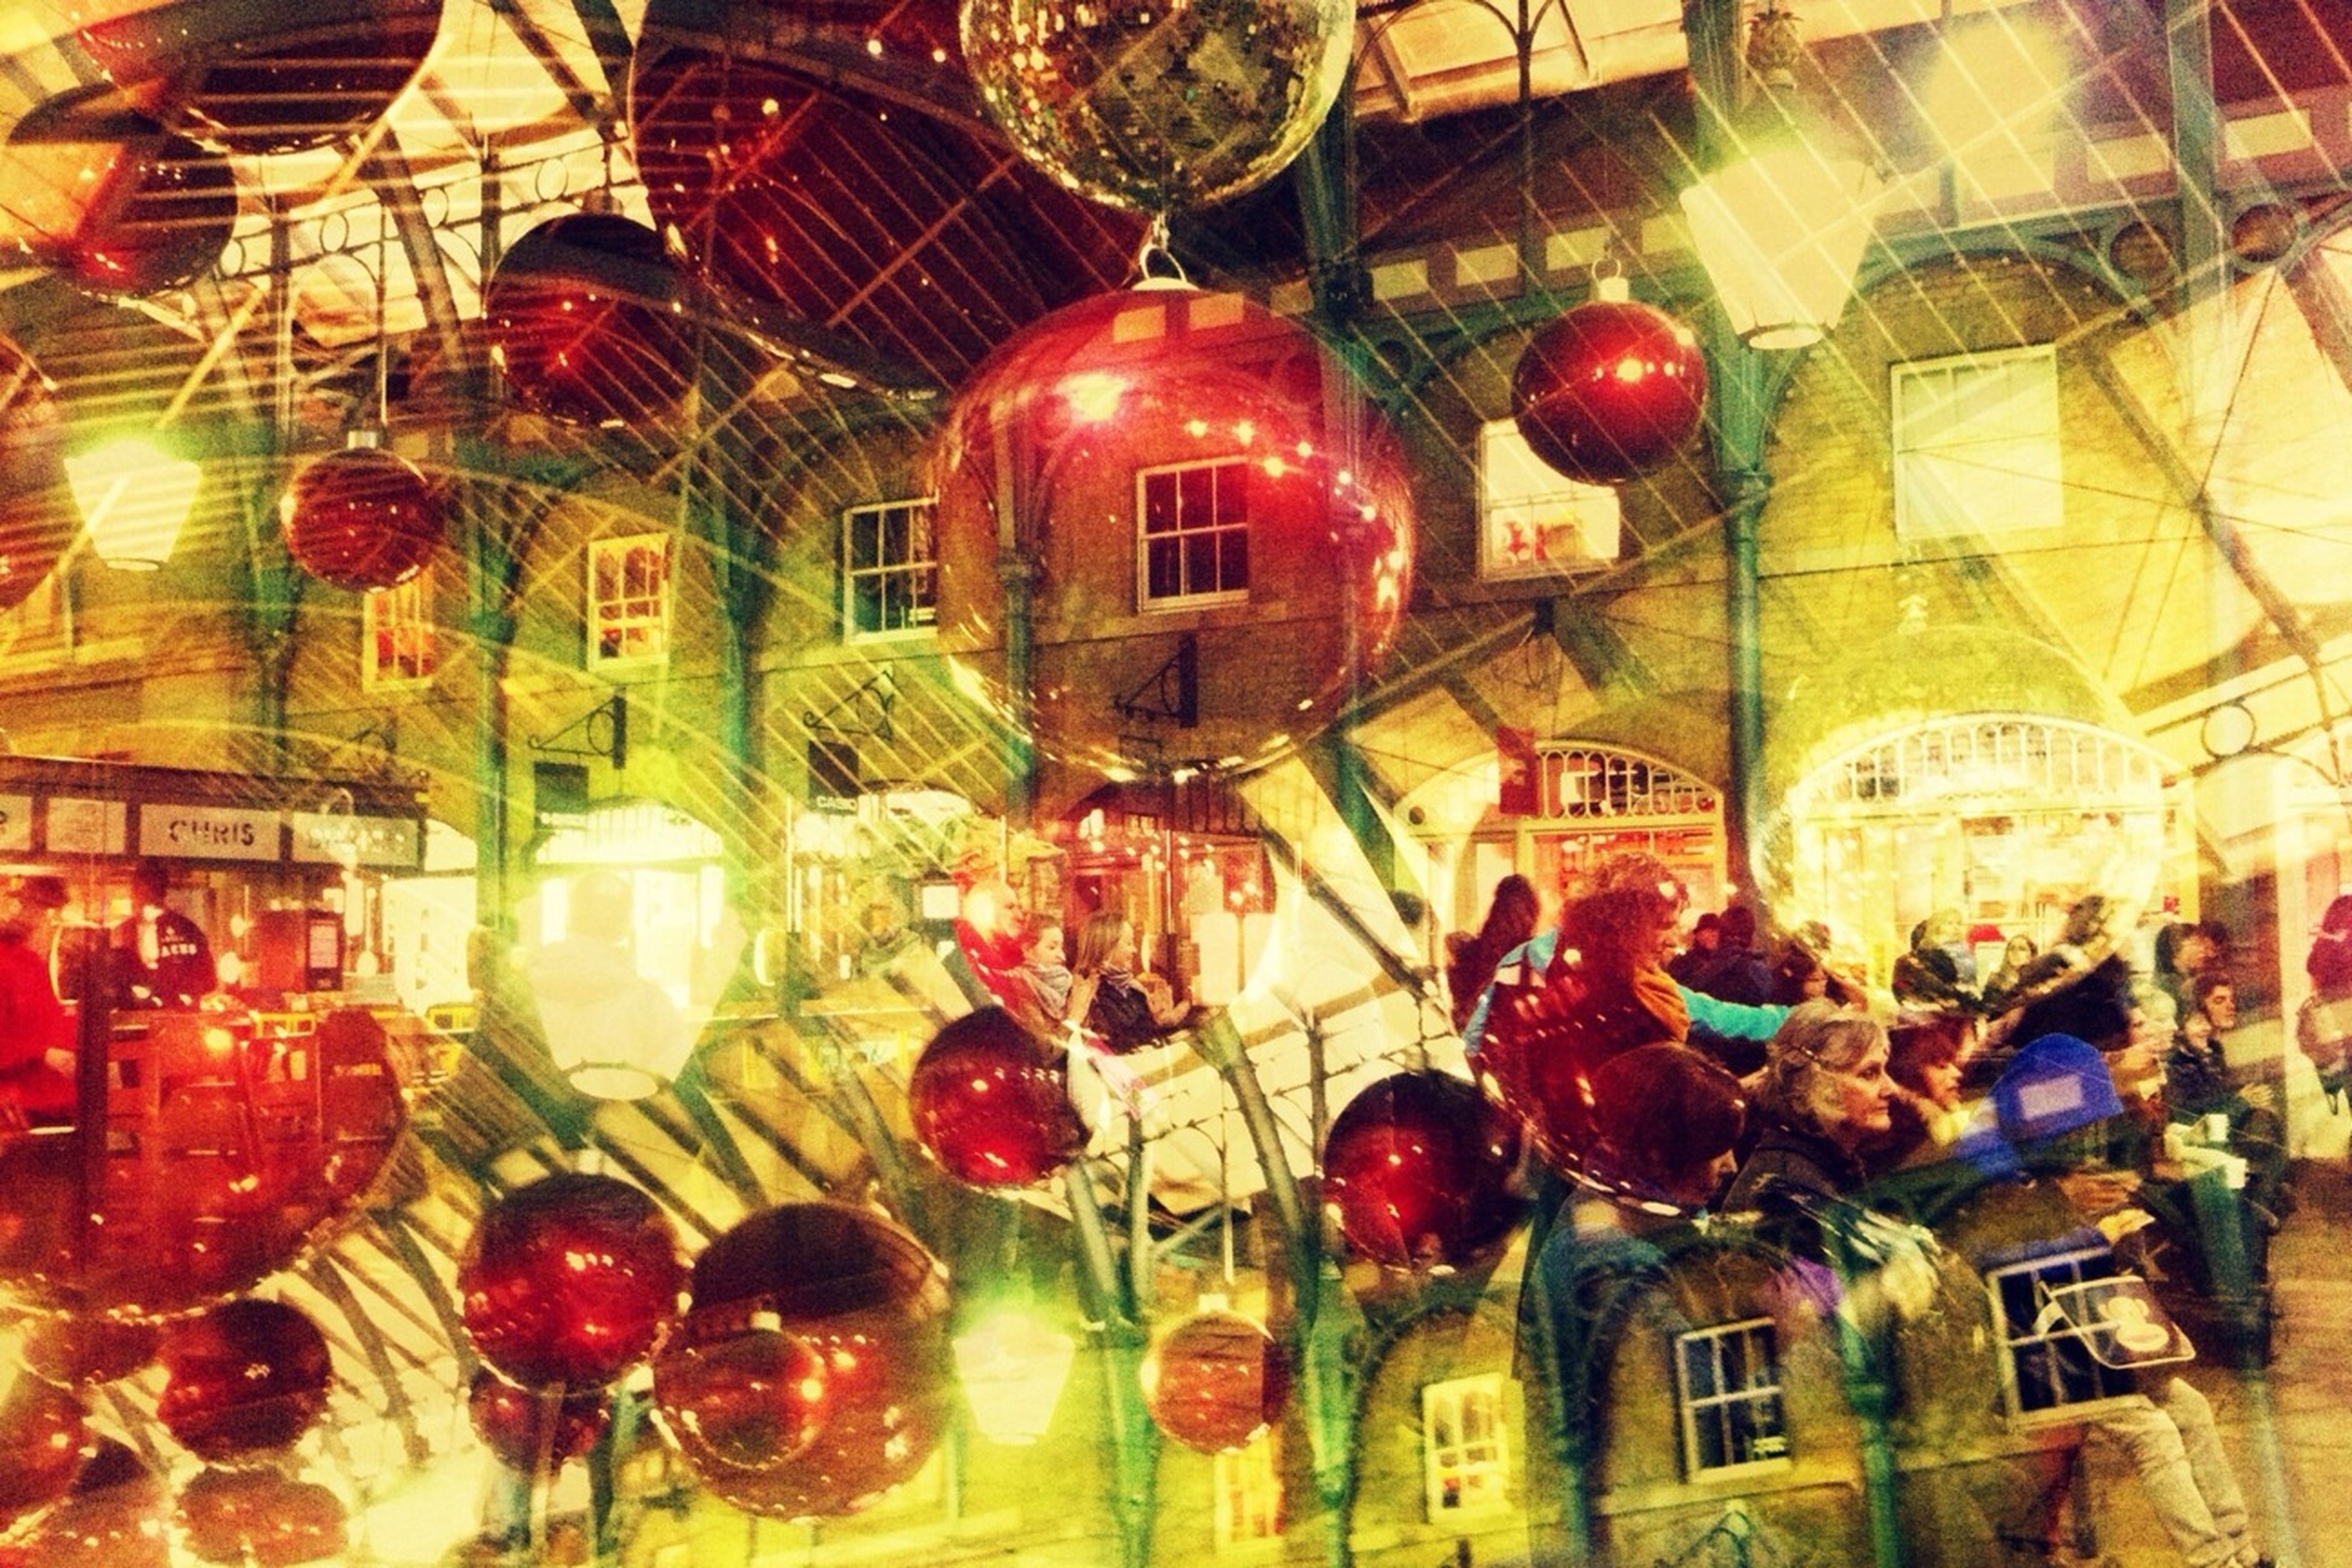 hanging, decoration, indoors, lantern, low angle view, lighting equipment, illuminated, celebration, christmas, chinese lantern, christmas decoration, ceiling, architecture, tradition, built structure, red, traditional festival, christmas tree, christmas ornament, cultures